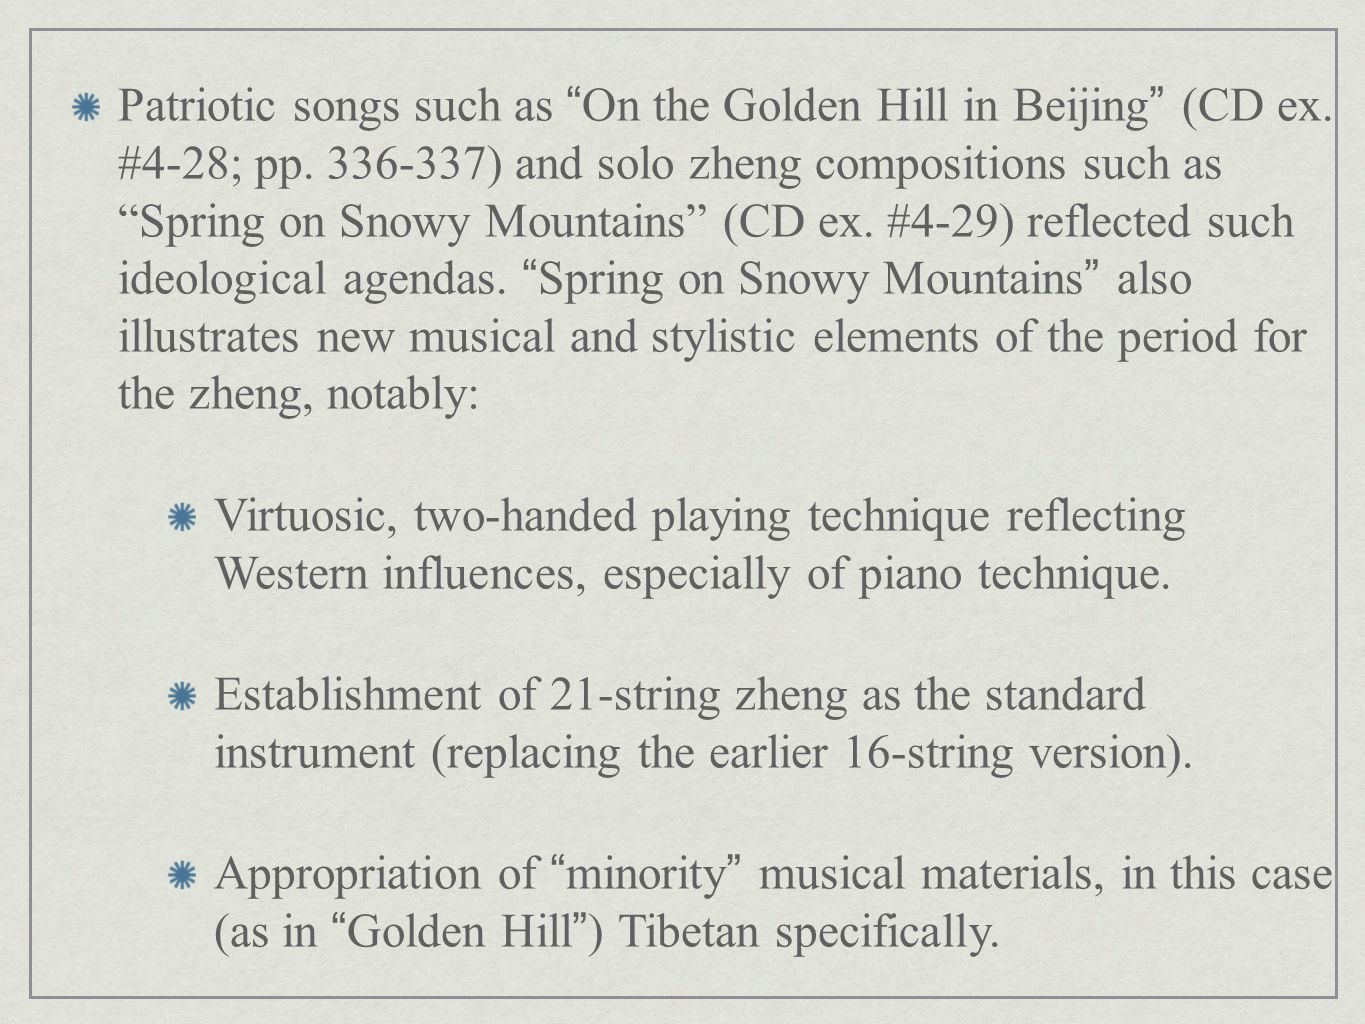 Patriotic songs such as On the Golden Hill in Beijing (CD ex